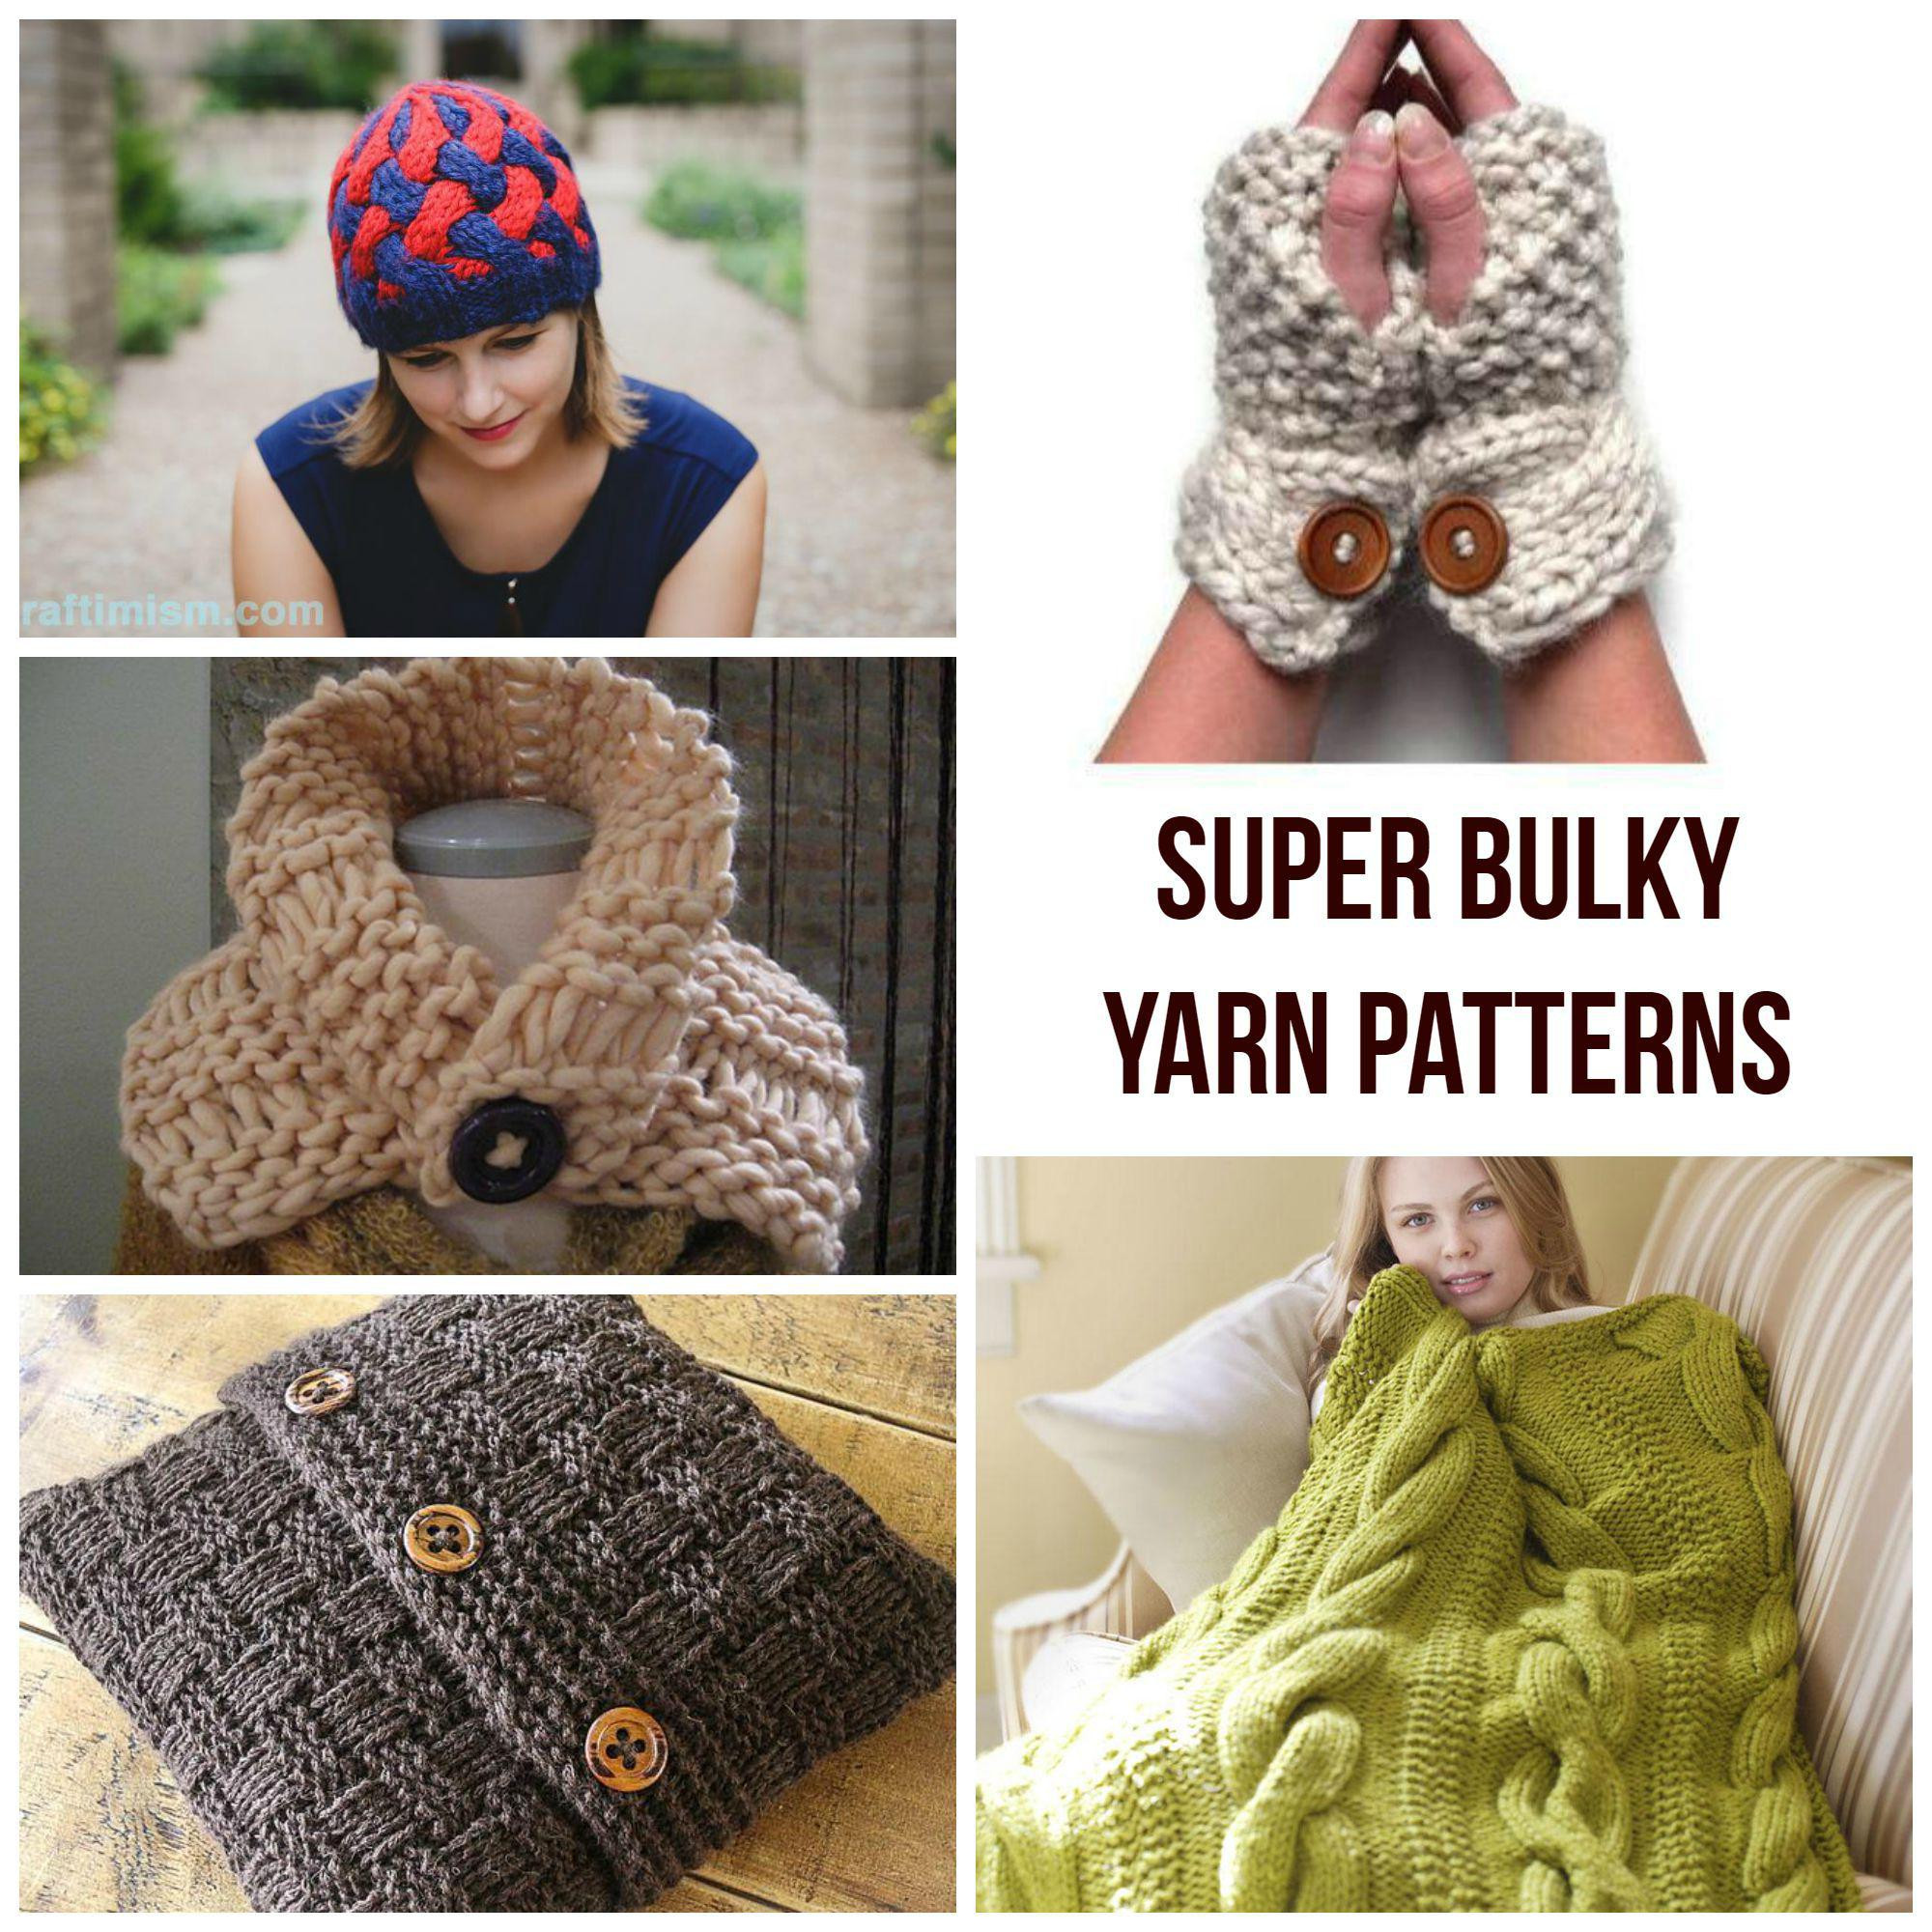 Super Bulky Yarn Blanket New Quick Knits Super Bulky Yarn Patterns Craftsy Of Brilliant 42 Models Super Bulky Yarn Blanket